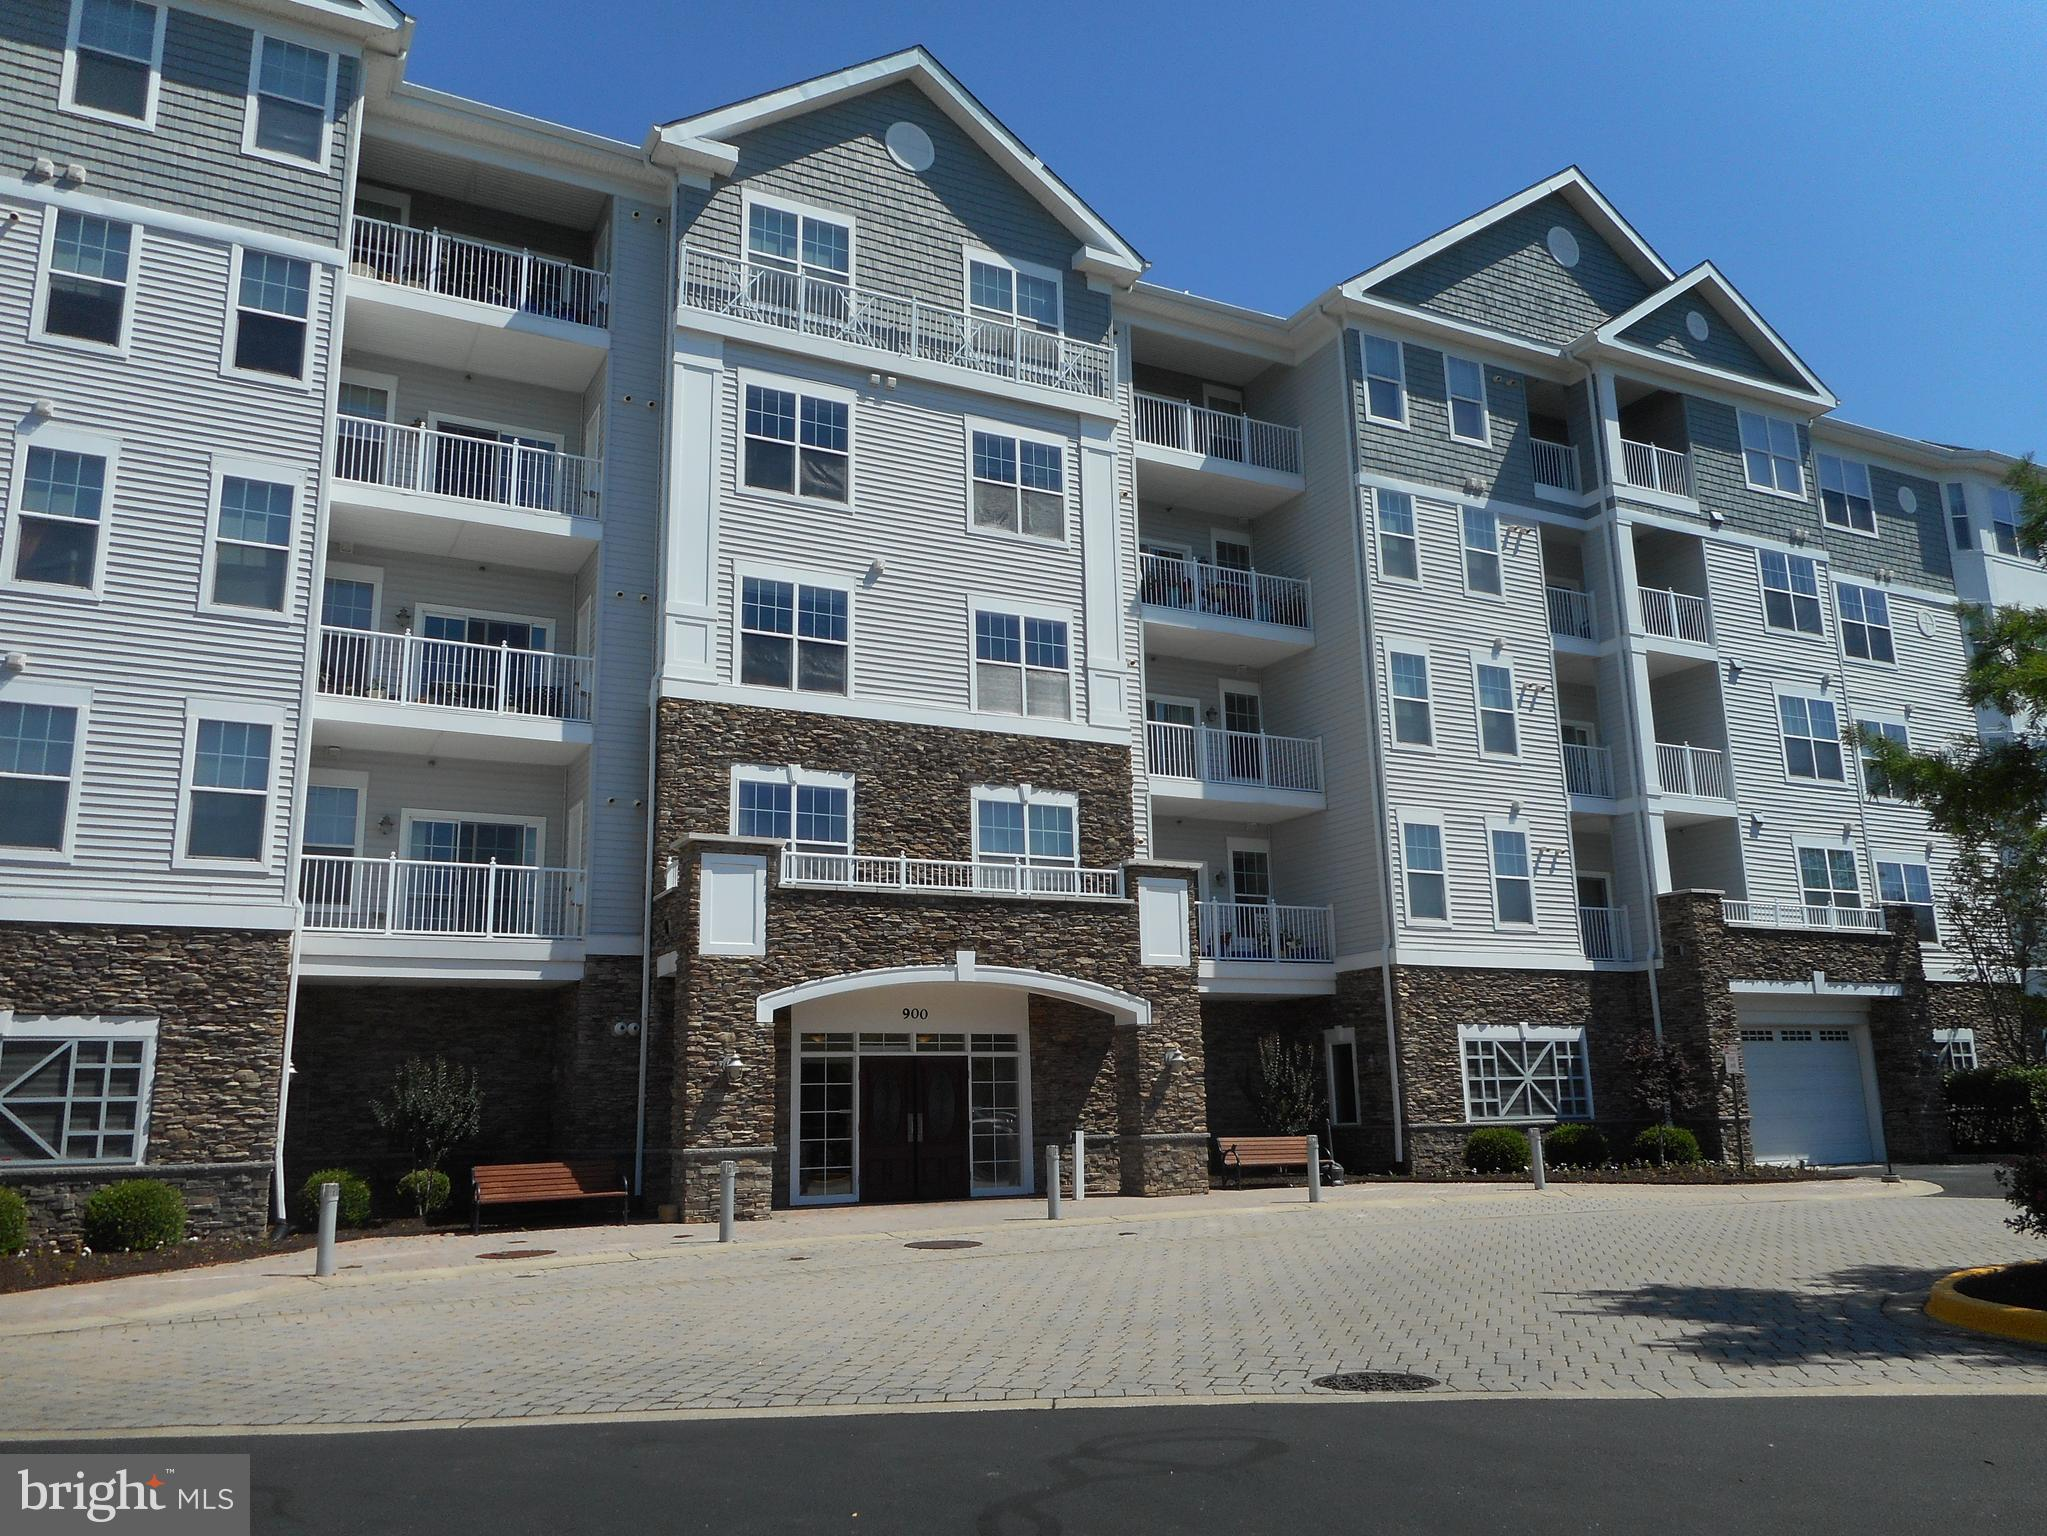 A beautiful 2 bedroom, 2 bath condo in the gated , waterfront community of Deep Harbour.  Enjoy water views, the pool, and be close to downtown restaurants and shopping.